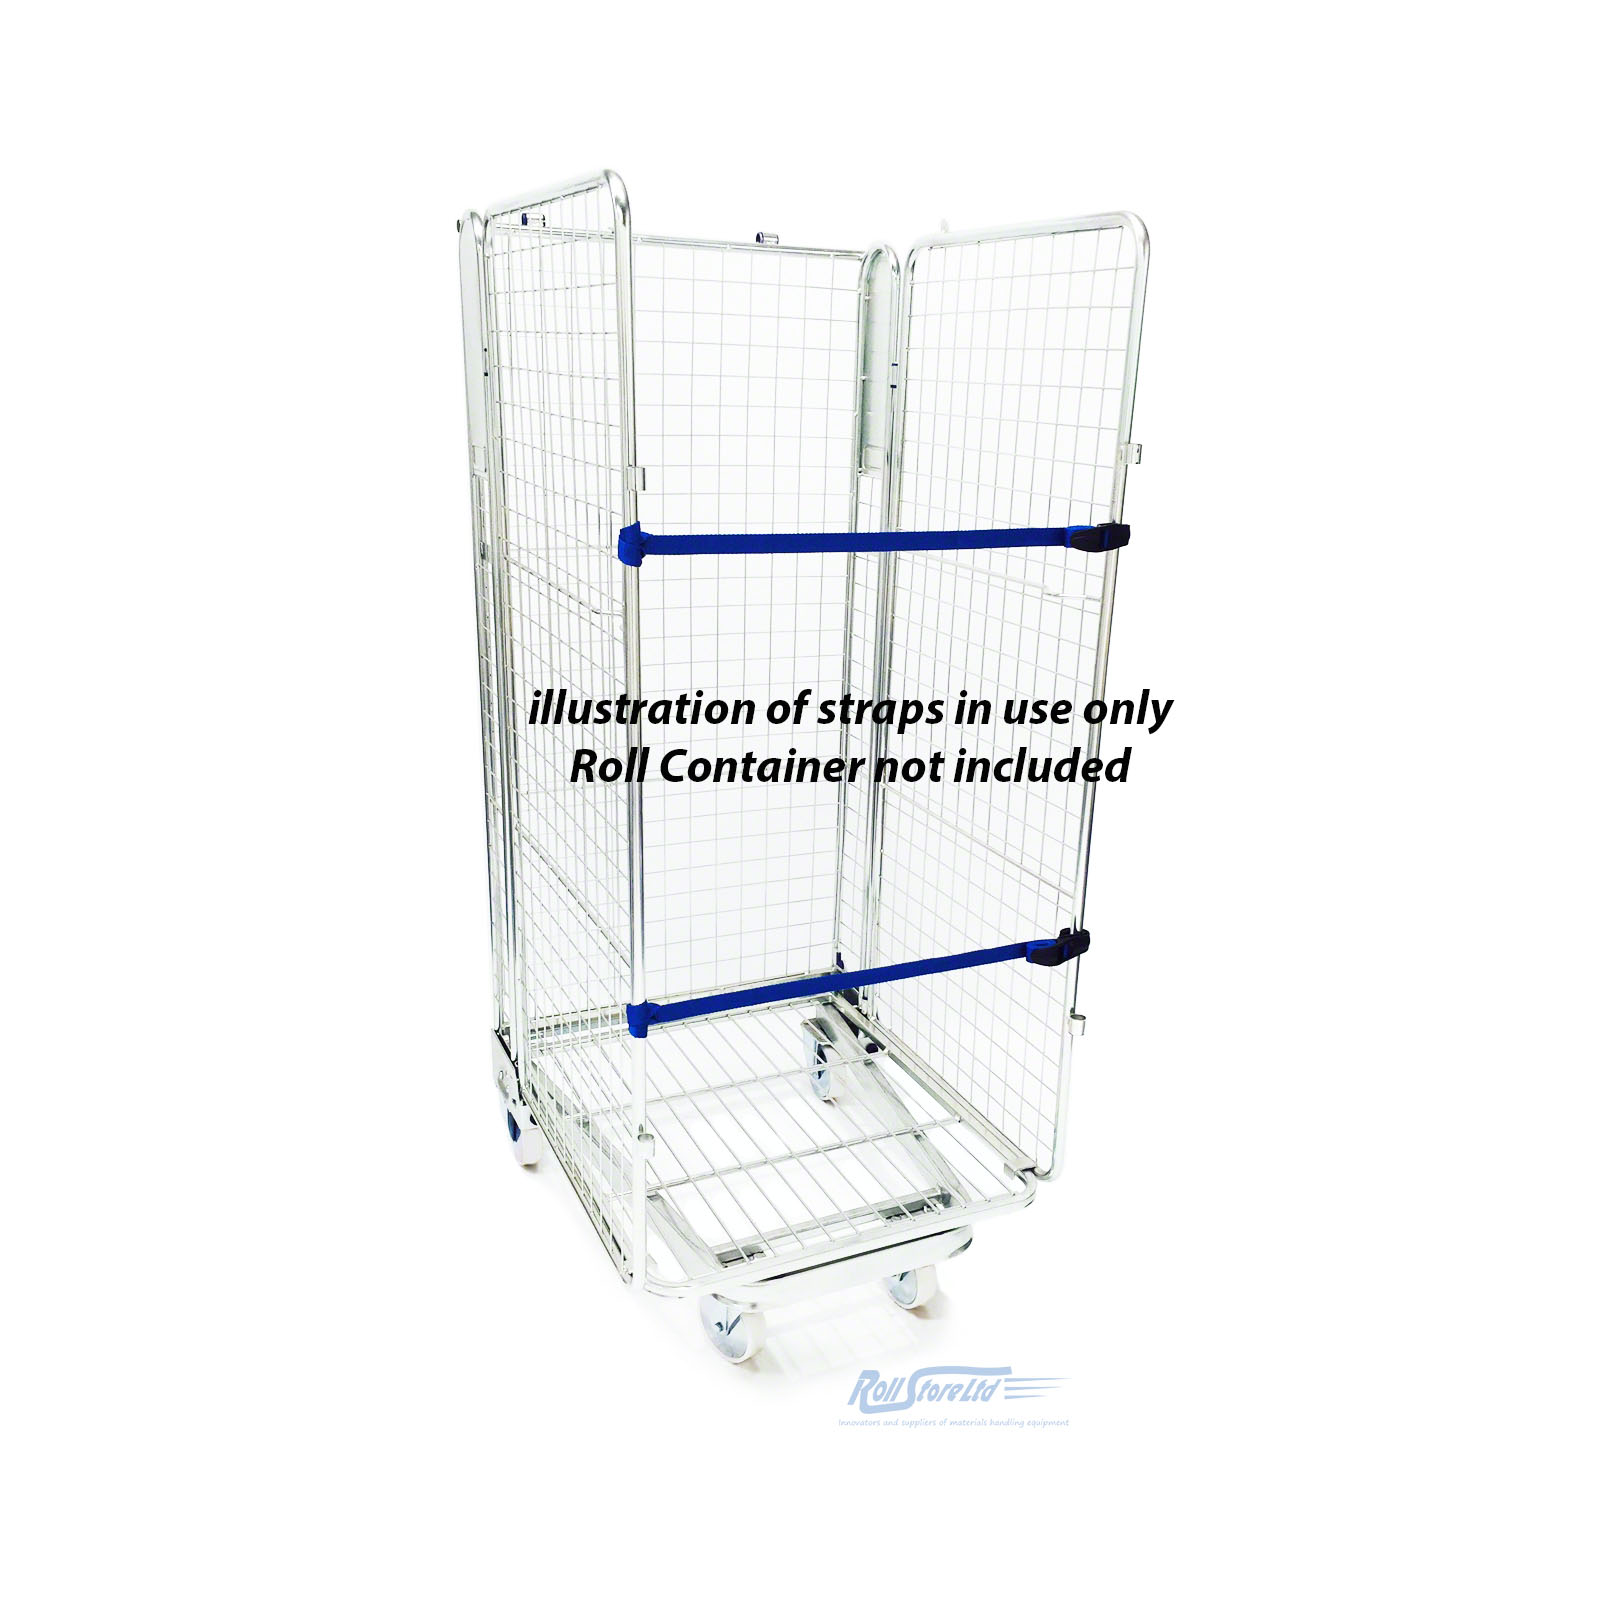 Nylon Retention Straps together with 2 3 4 Sided Z Frame Roll Cage in addition Two Sided Roll Cage besides 2 Sided Roll Cages moreover Roll Cages. on 2 sided roll cage trolley